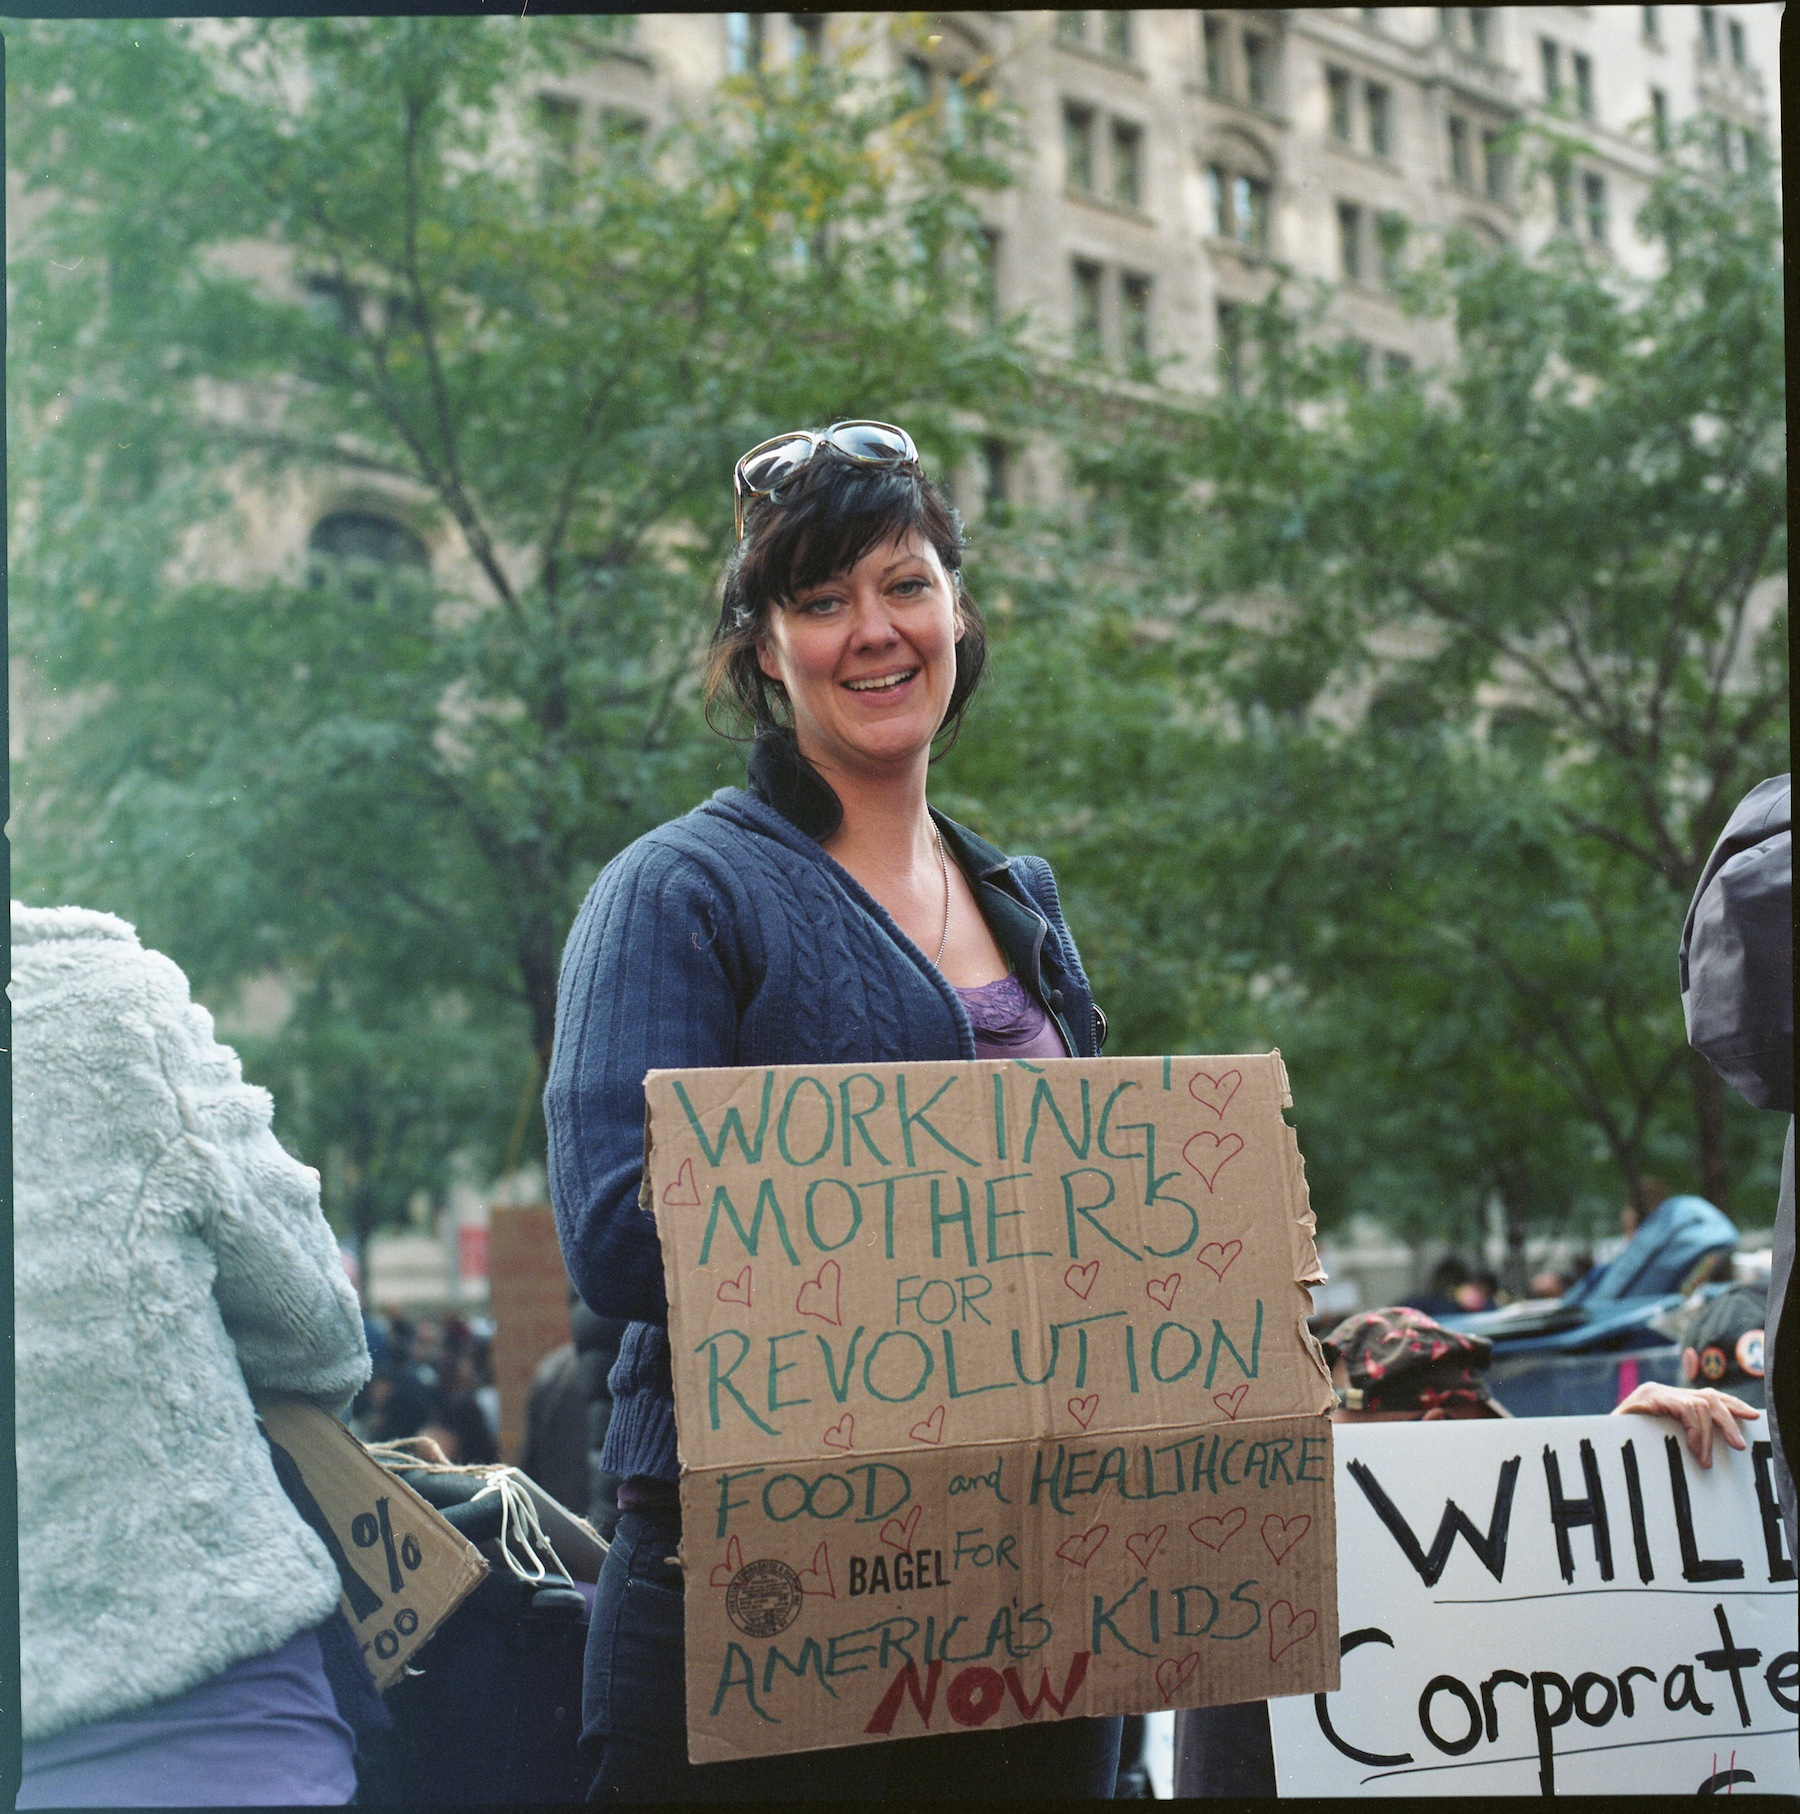 revolution working class and occupy wall Today's occupy wall street would require a revolution that would replace capitalist control with working-class los angeles review of books, 6671.